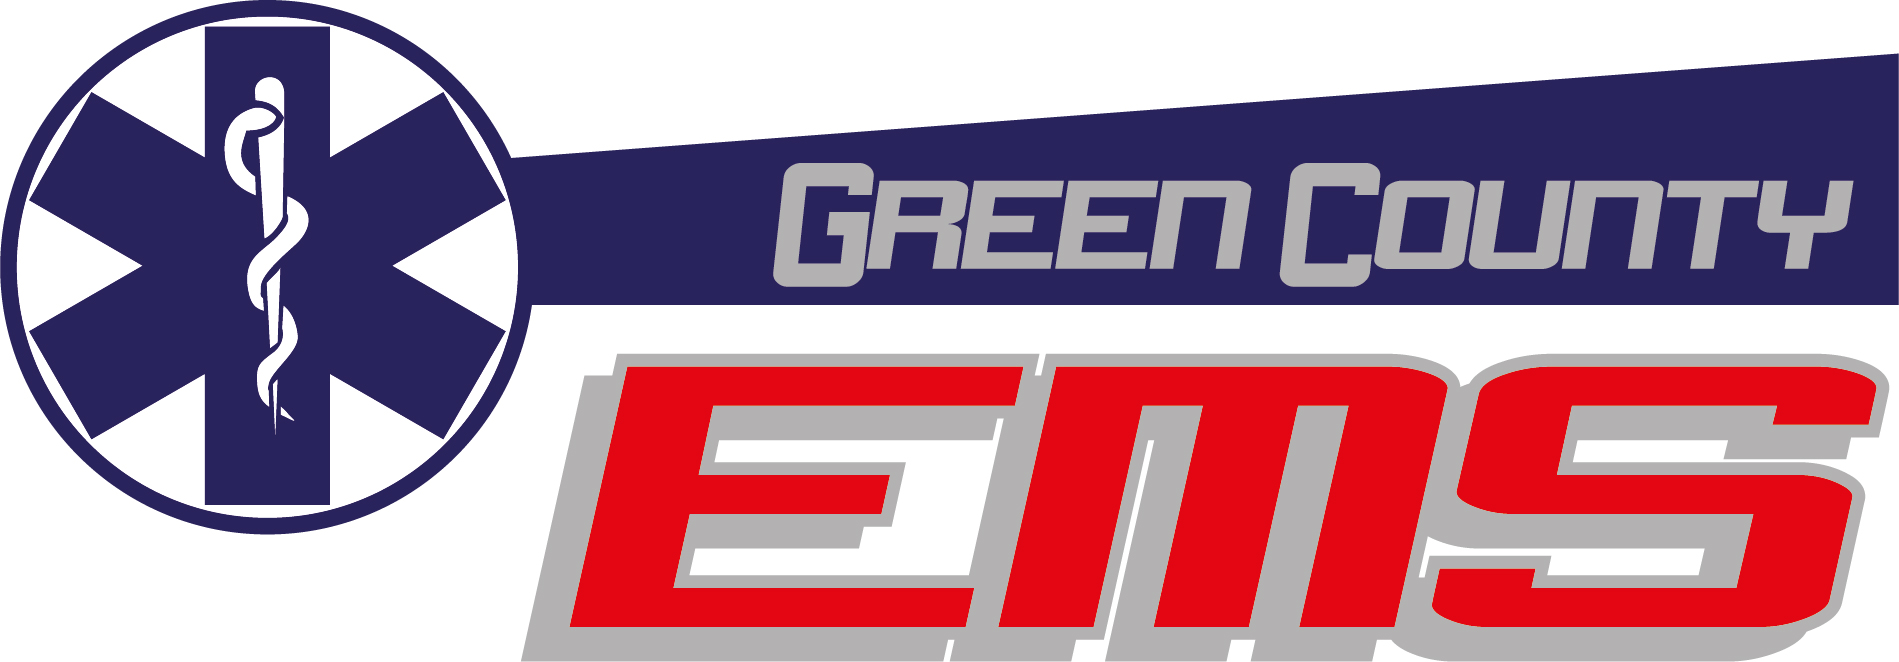 Green County EMS logo.jpg